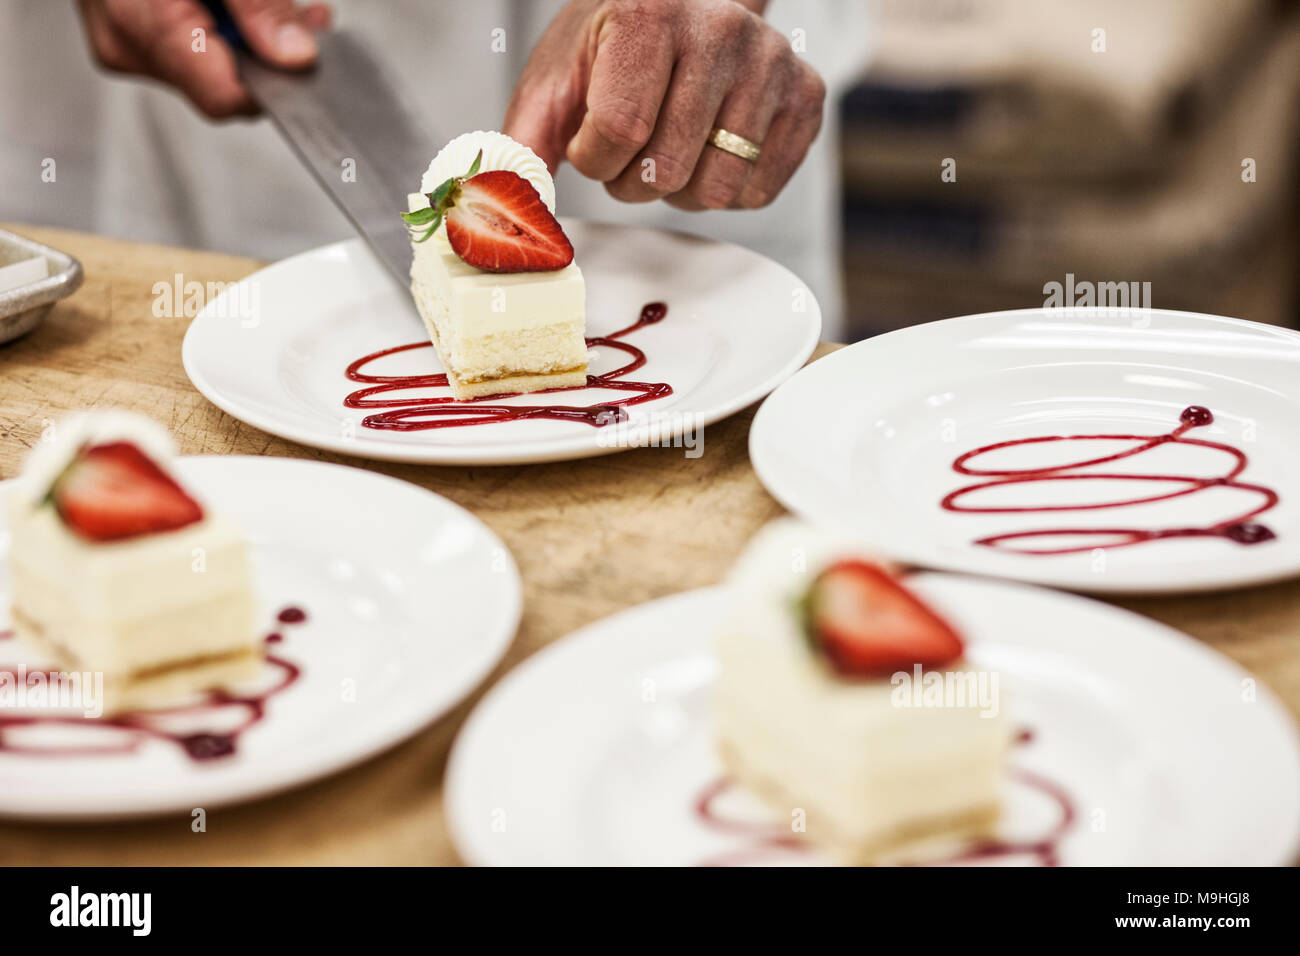 Chef Hands Placing A Layered Desert On A Plate Presentation Of A Sweet Dish Stock Photo Alamy